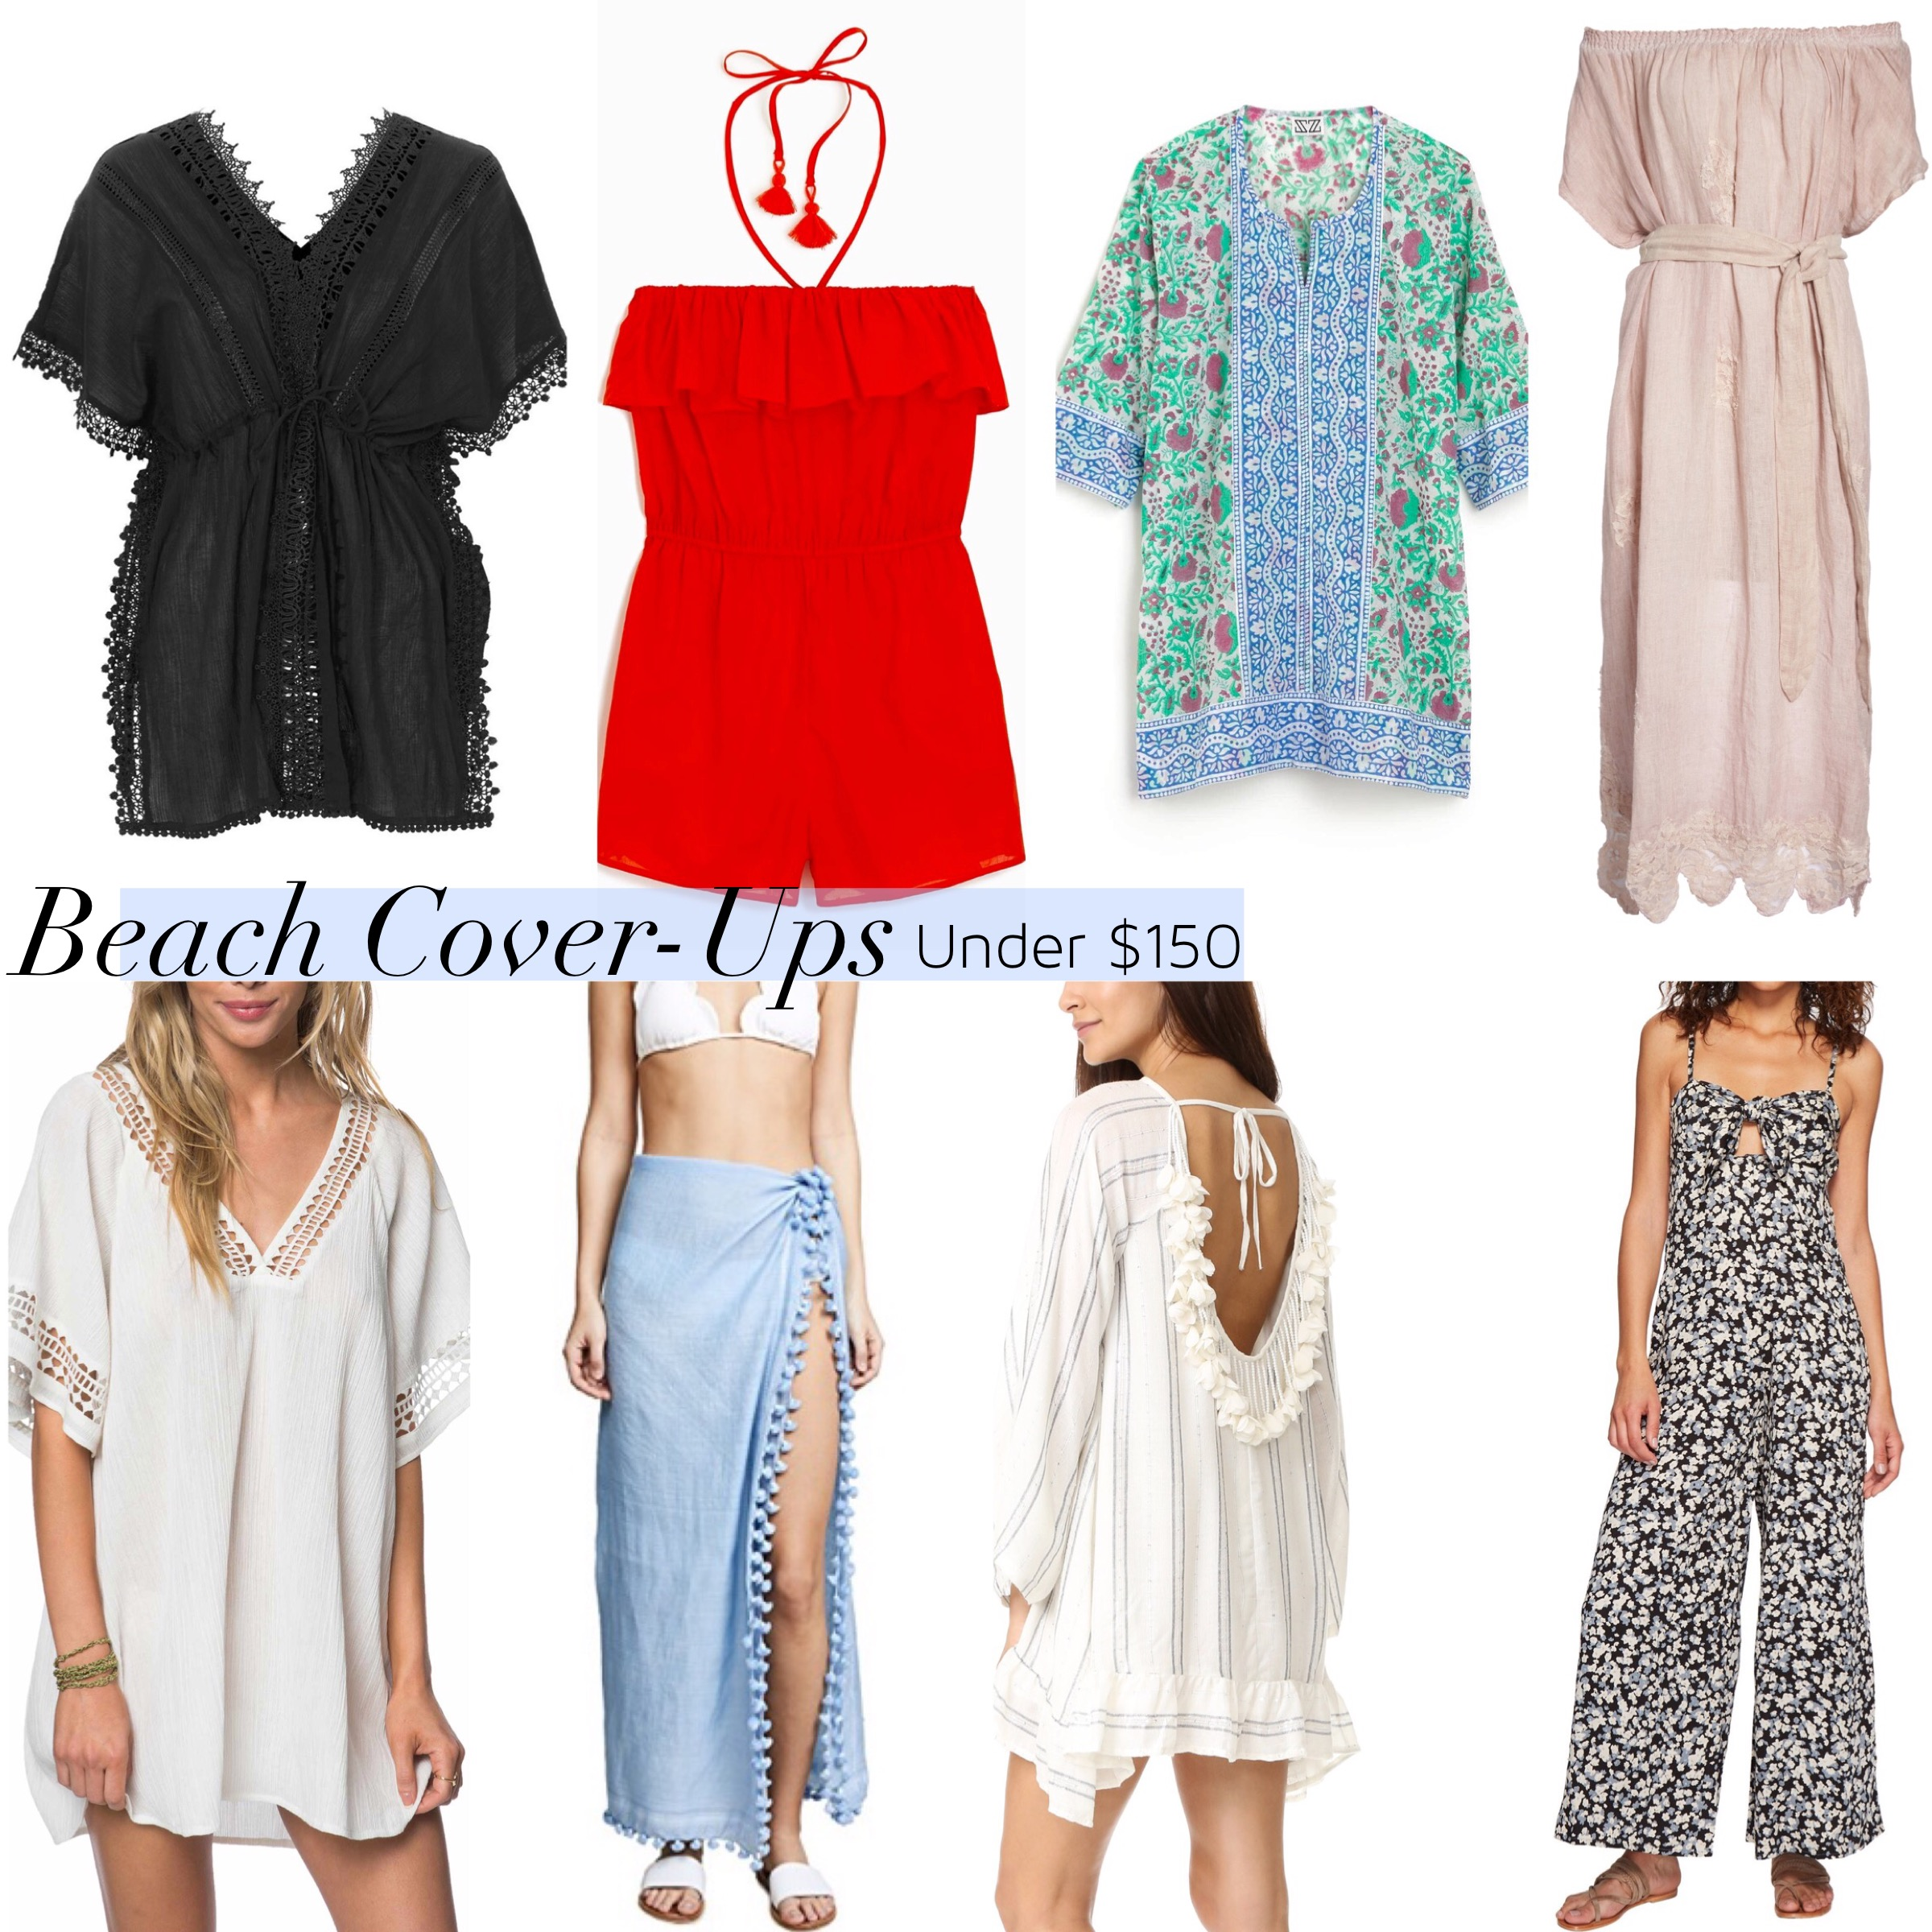 cute beach swim cover-ups under $150